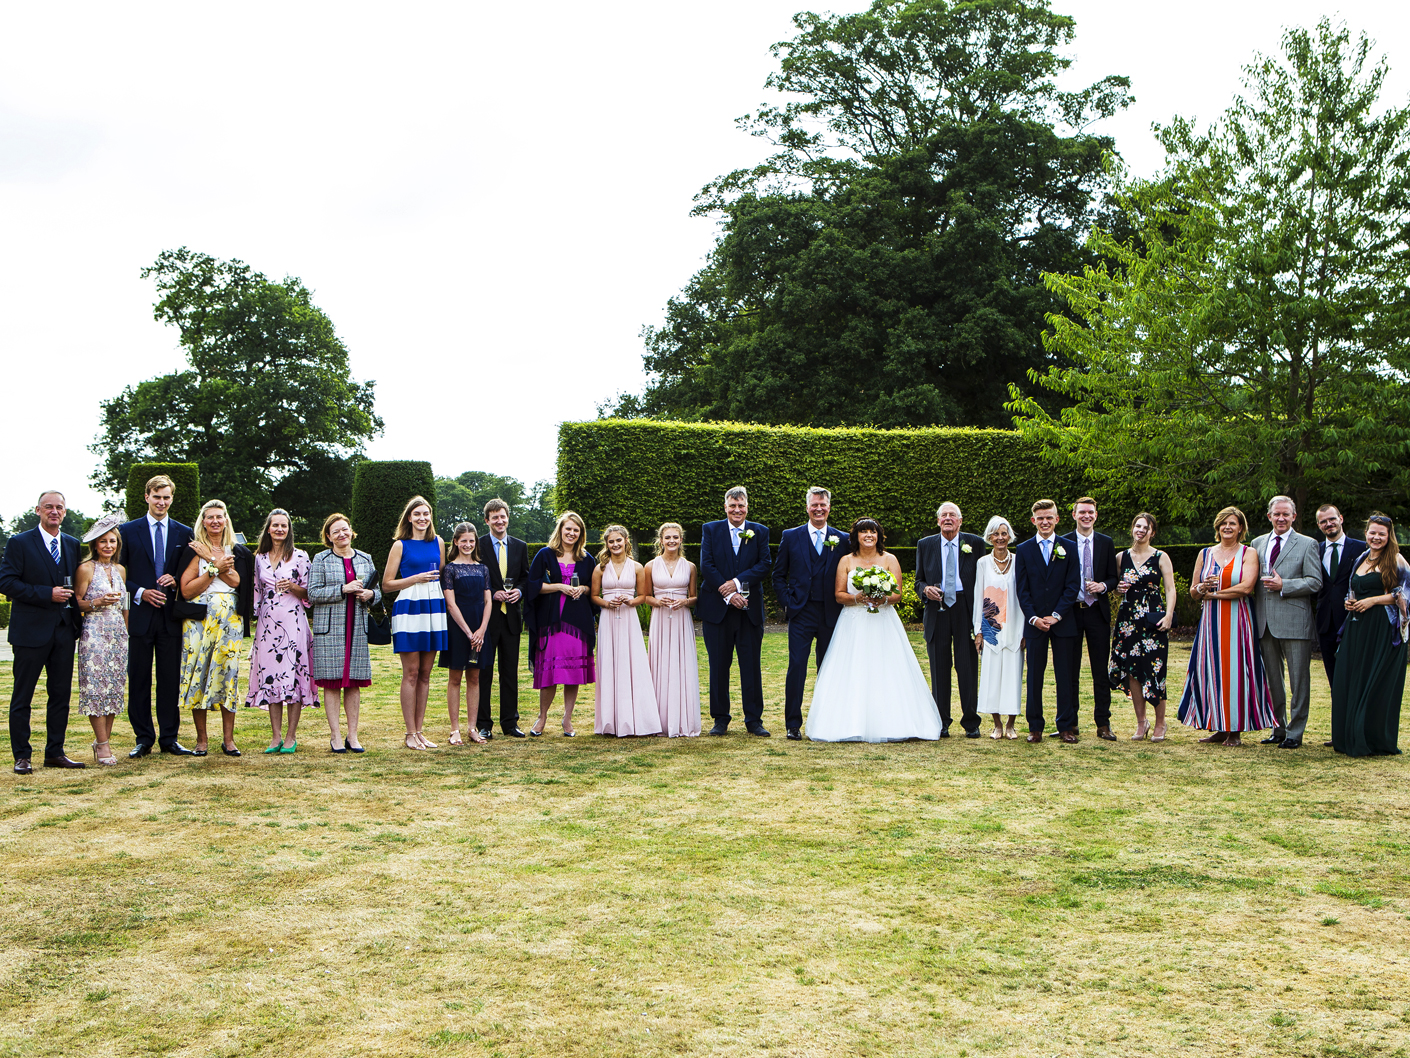 wedding-photography-of-the-group-shots-in-knutsford-cheshire